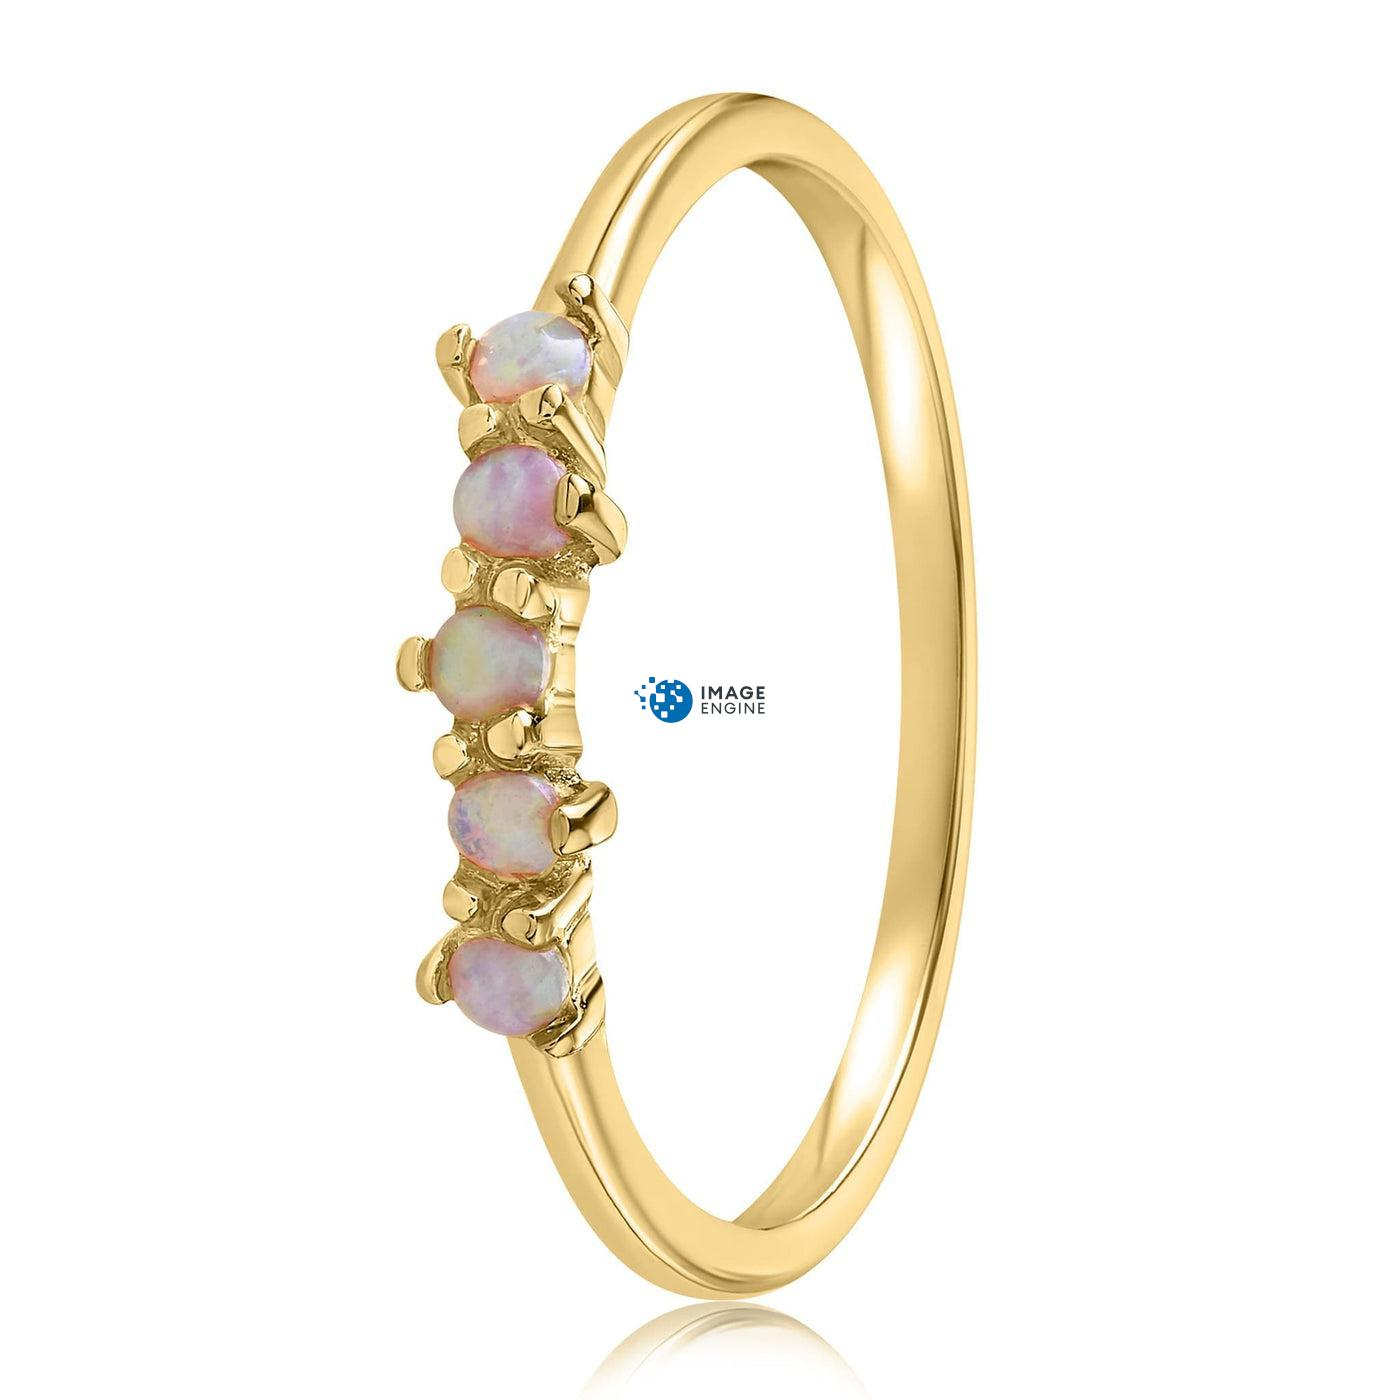 Samantha Simple Dots 5 Opal Ring - Side View - 18K Yellow Gold Vermeil